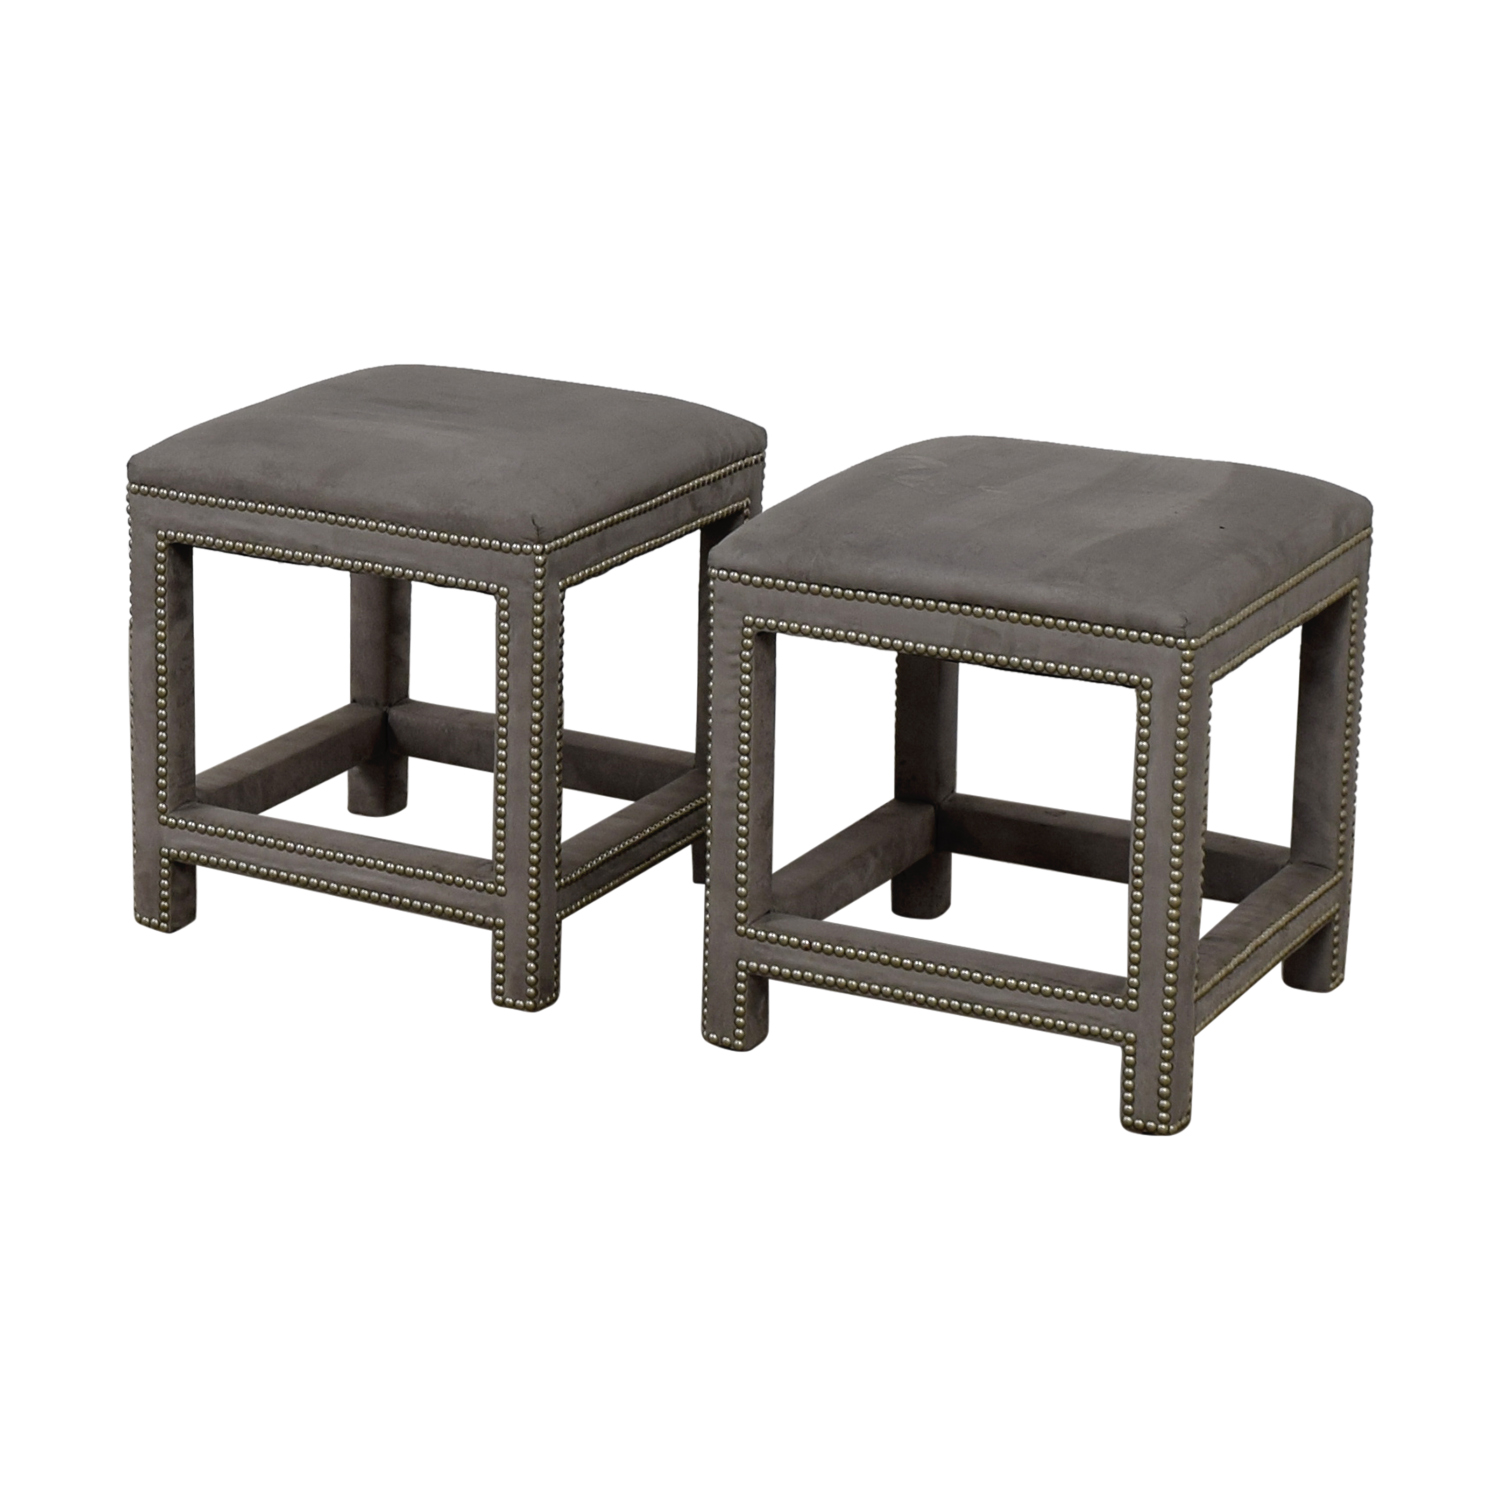 Lillian August Lillian August Grey Suede Nailhead Ottomans or Stools on sale